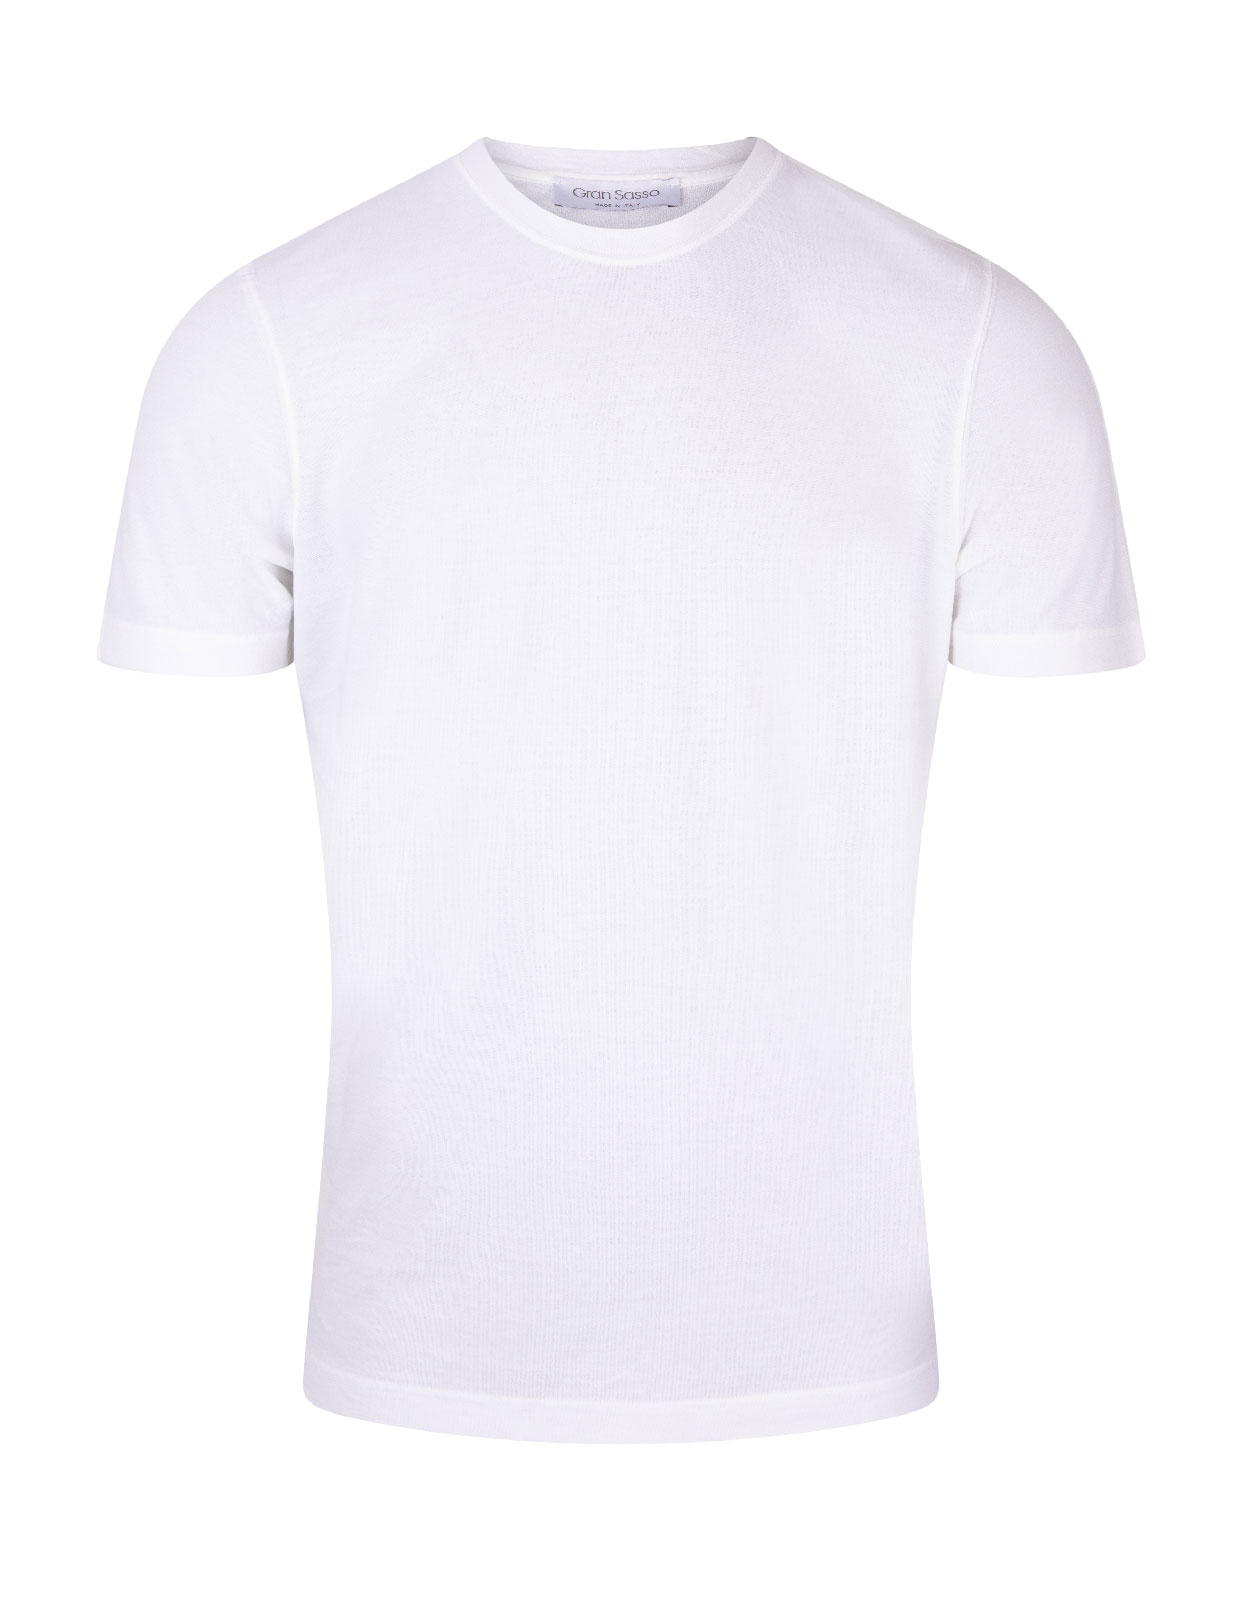 T-shirt Cotton Crew Neck White